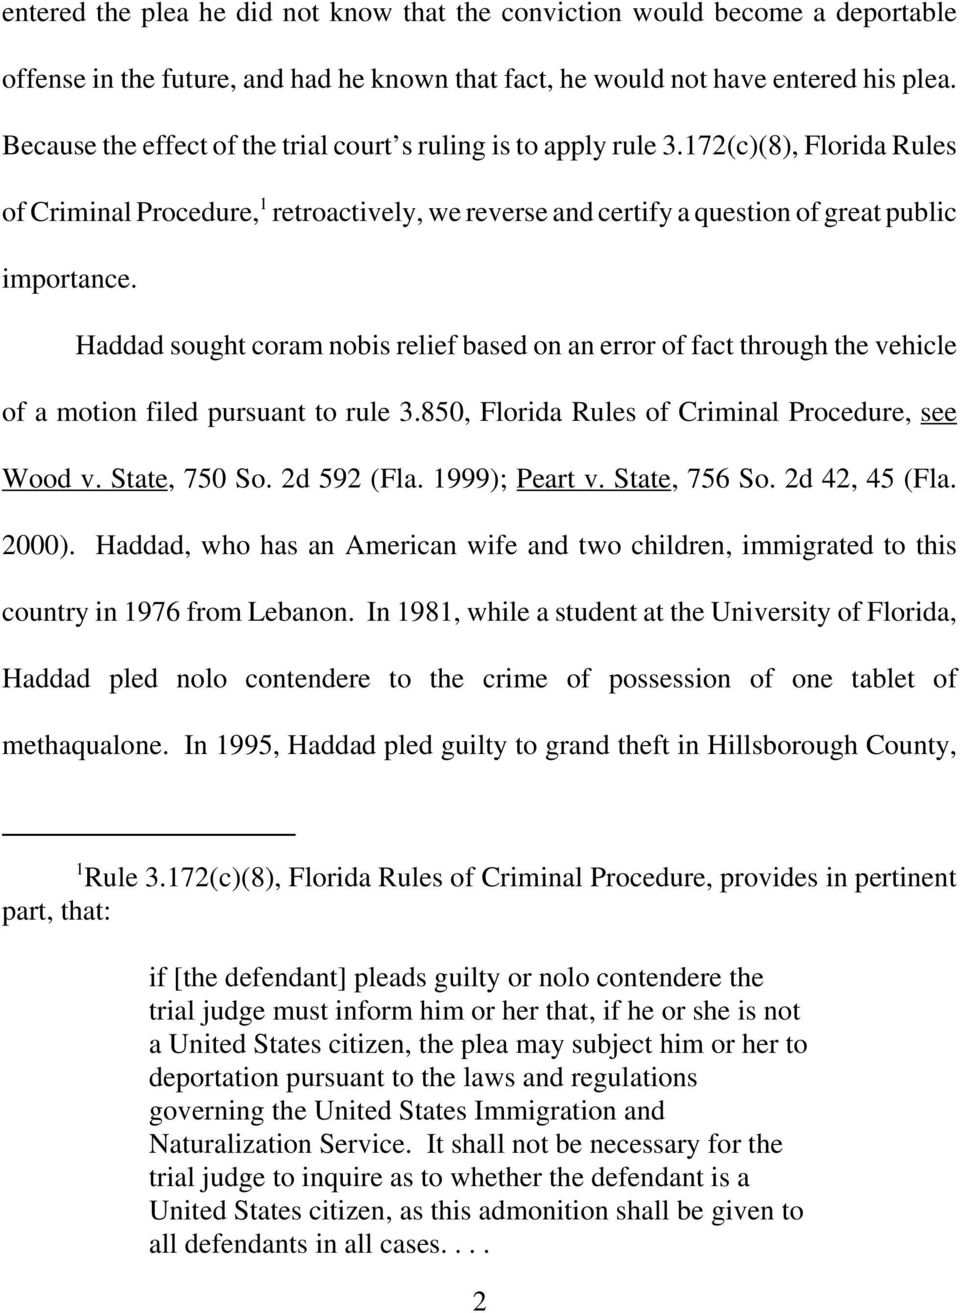 Haddad sought coram nobis relief based on an error of fact through the vehicle of a motion filed pursuant to rule 3.850, Florida Rules of Criminal Procedure, see Wood v. State, 750 So. 2d 592 (Fla.